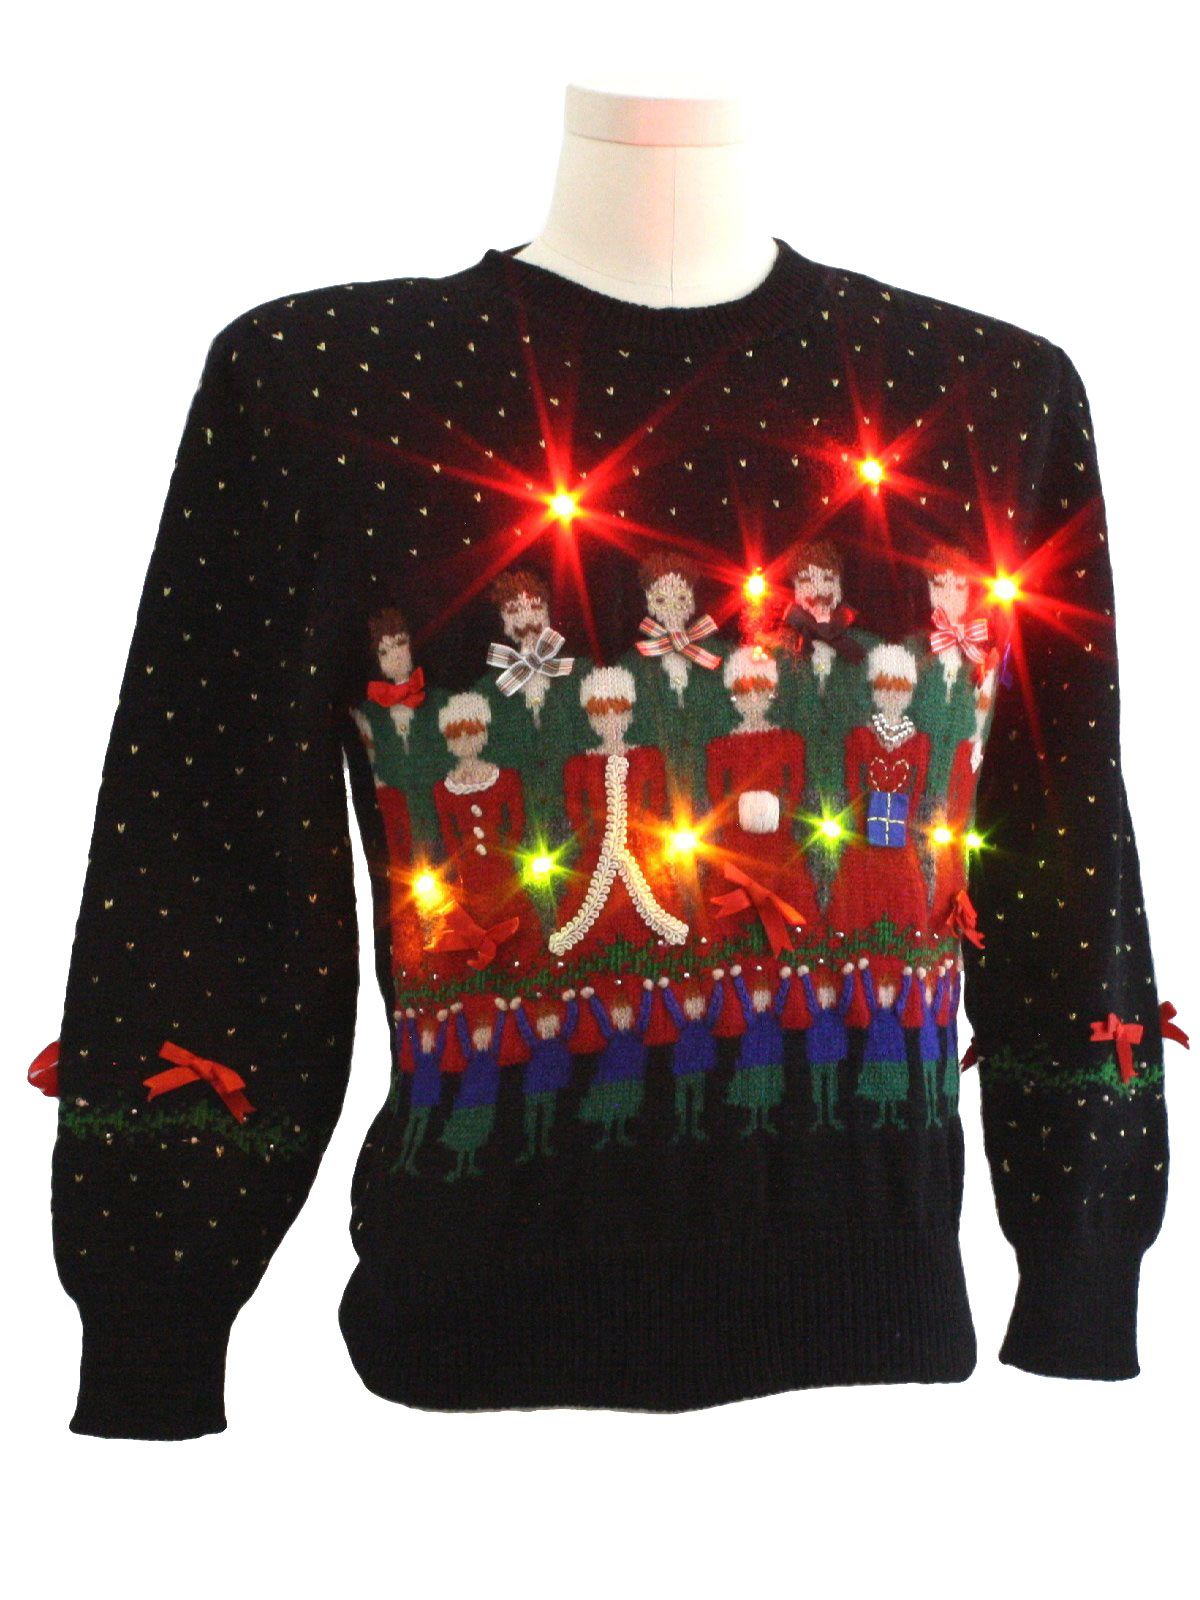 Find ugly christmas sweaters